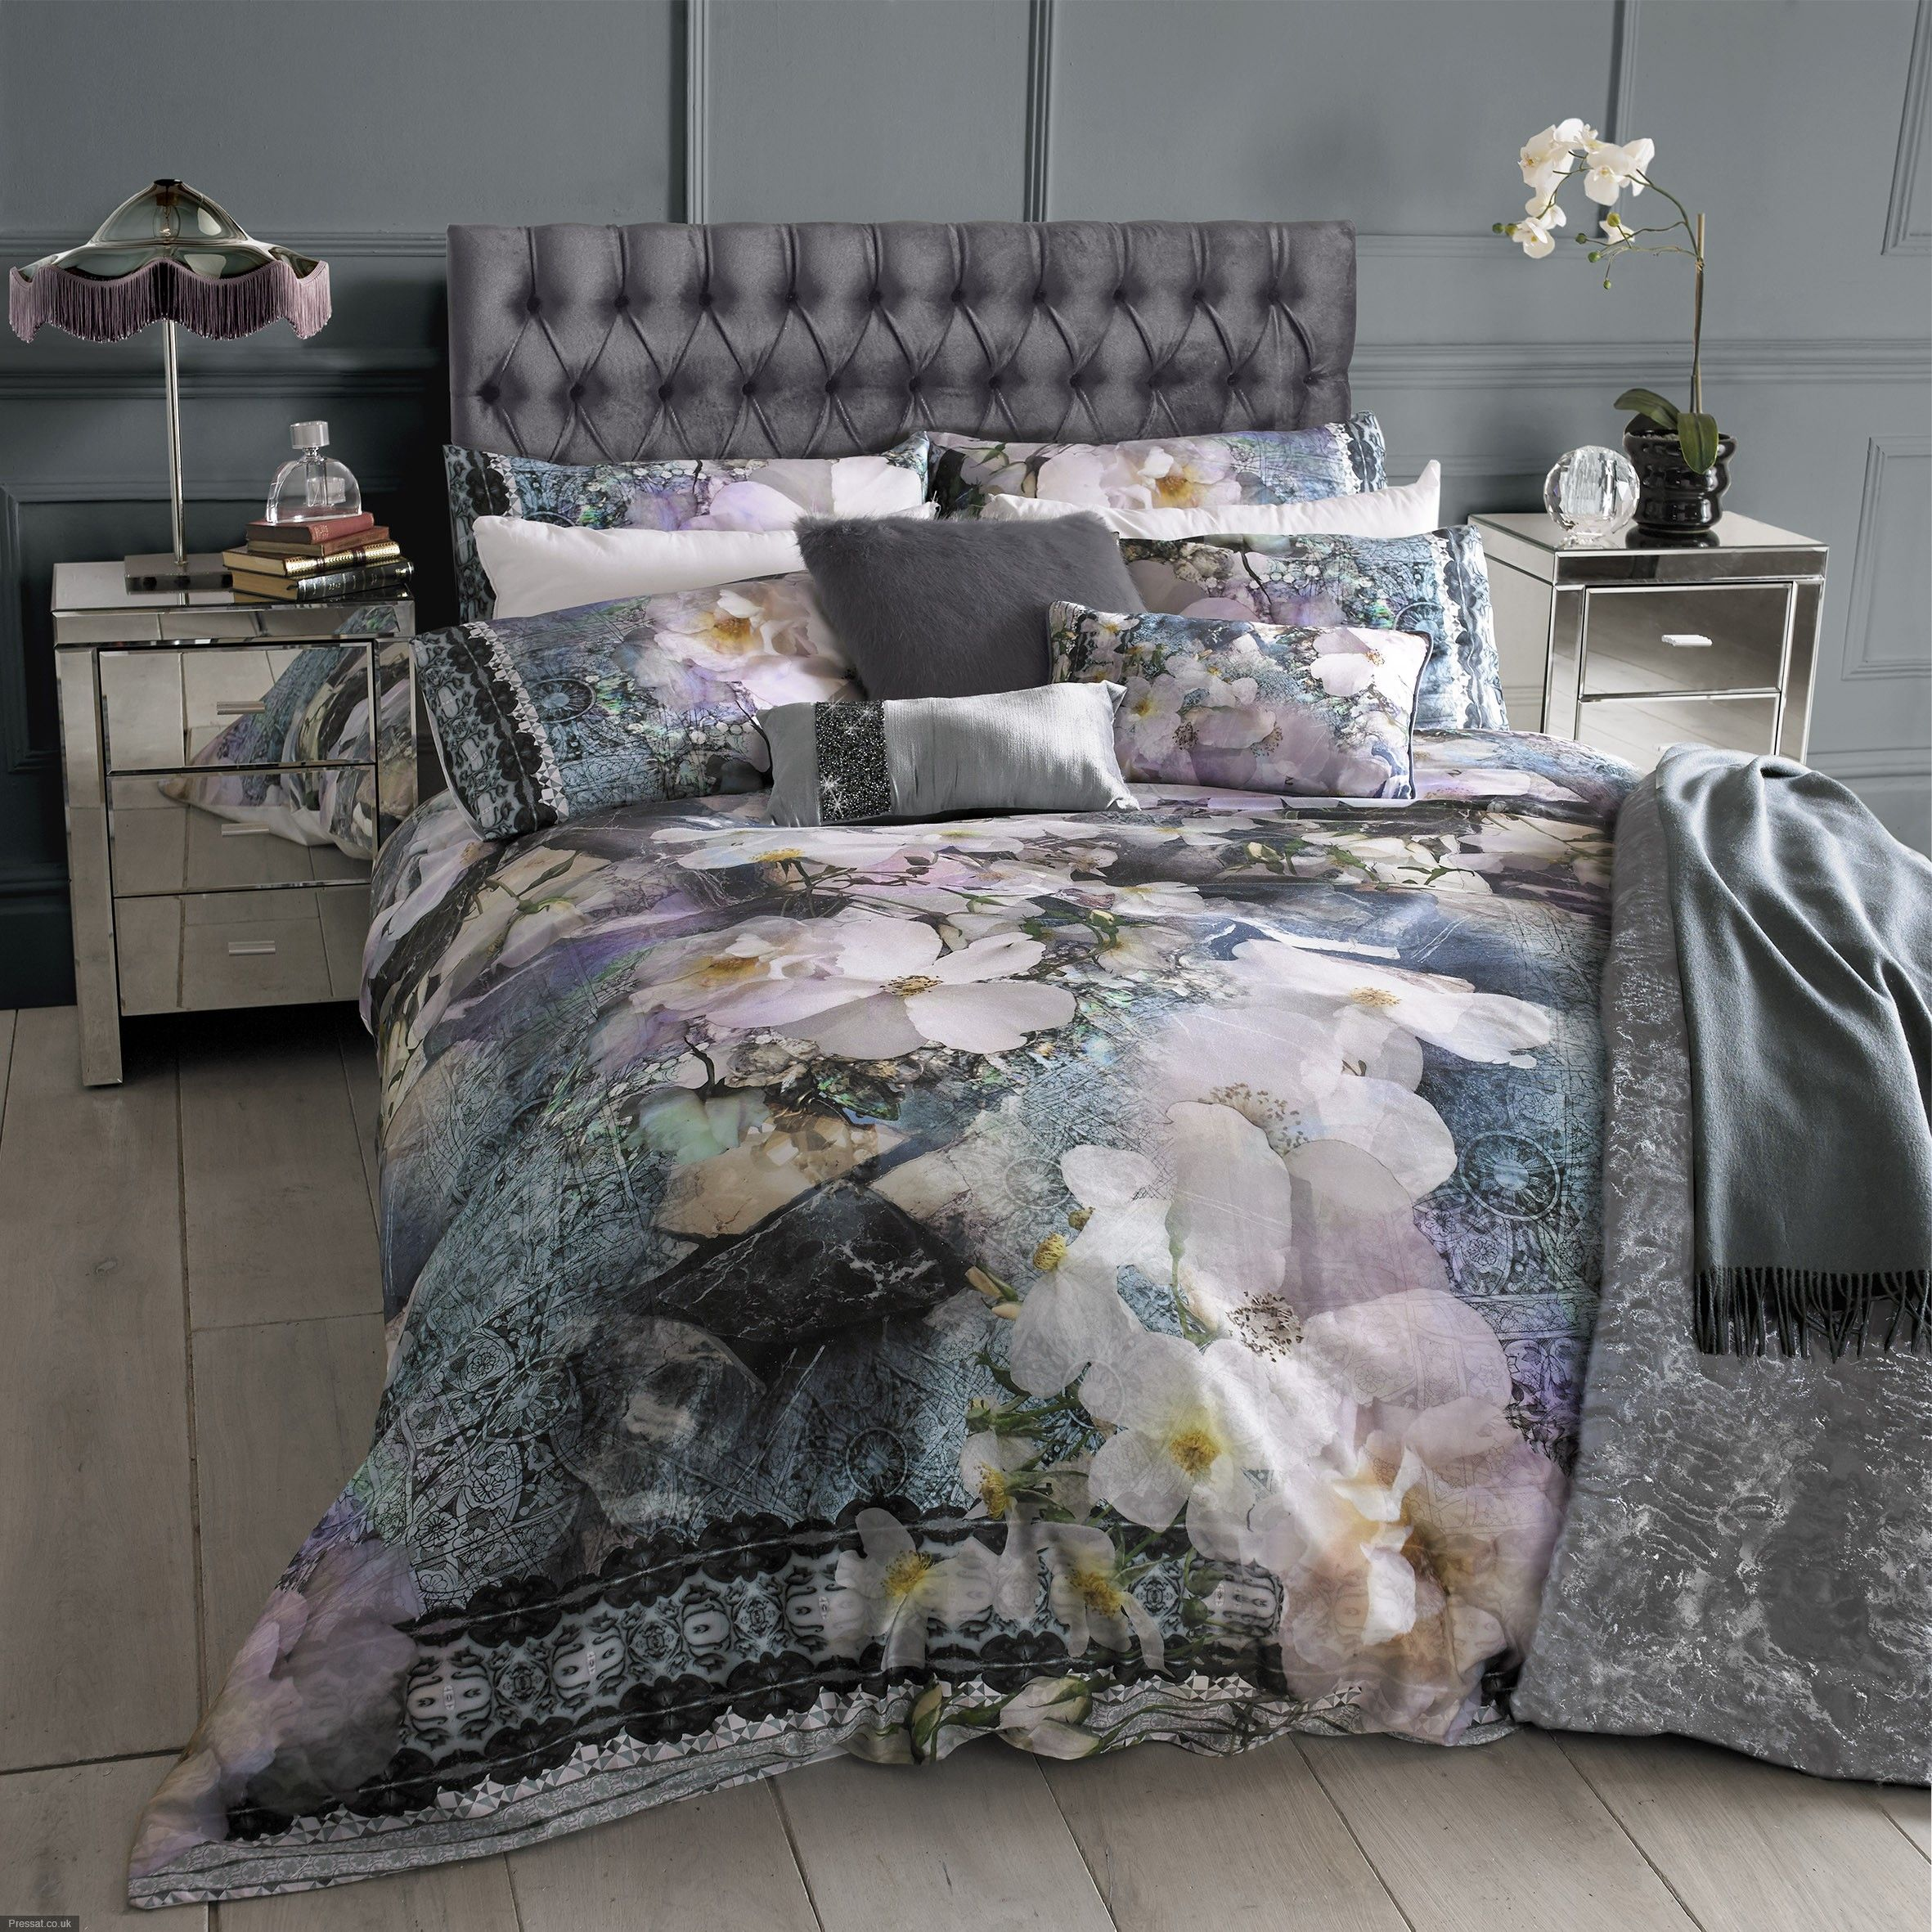 More Stunning Floral Ted Baker Bedding And Divine Silver Cabinetry